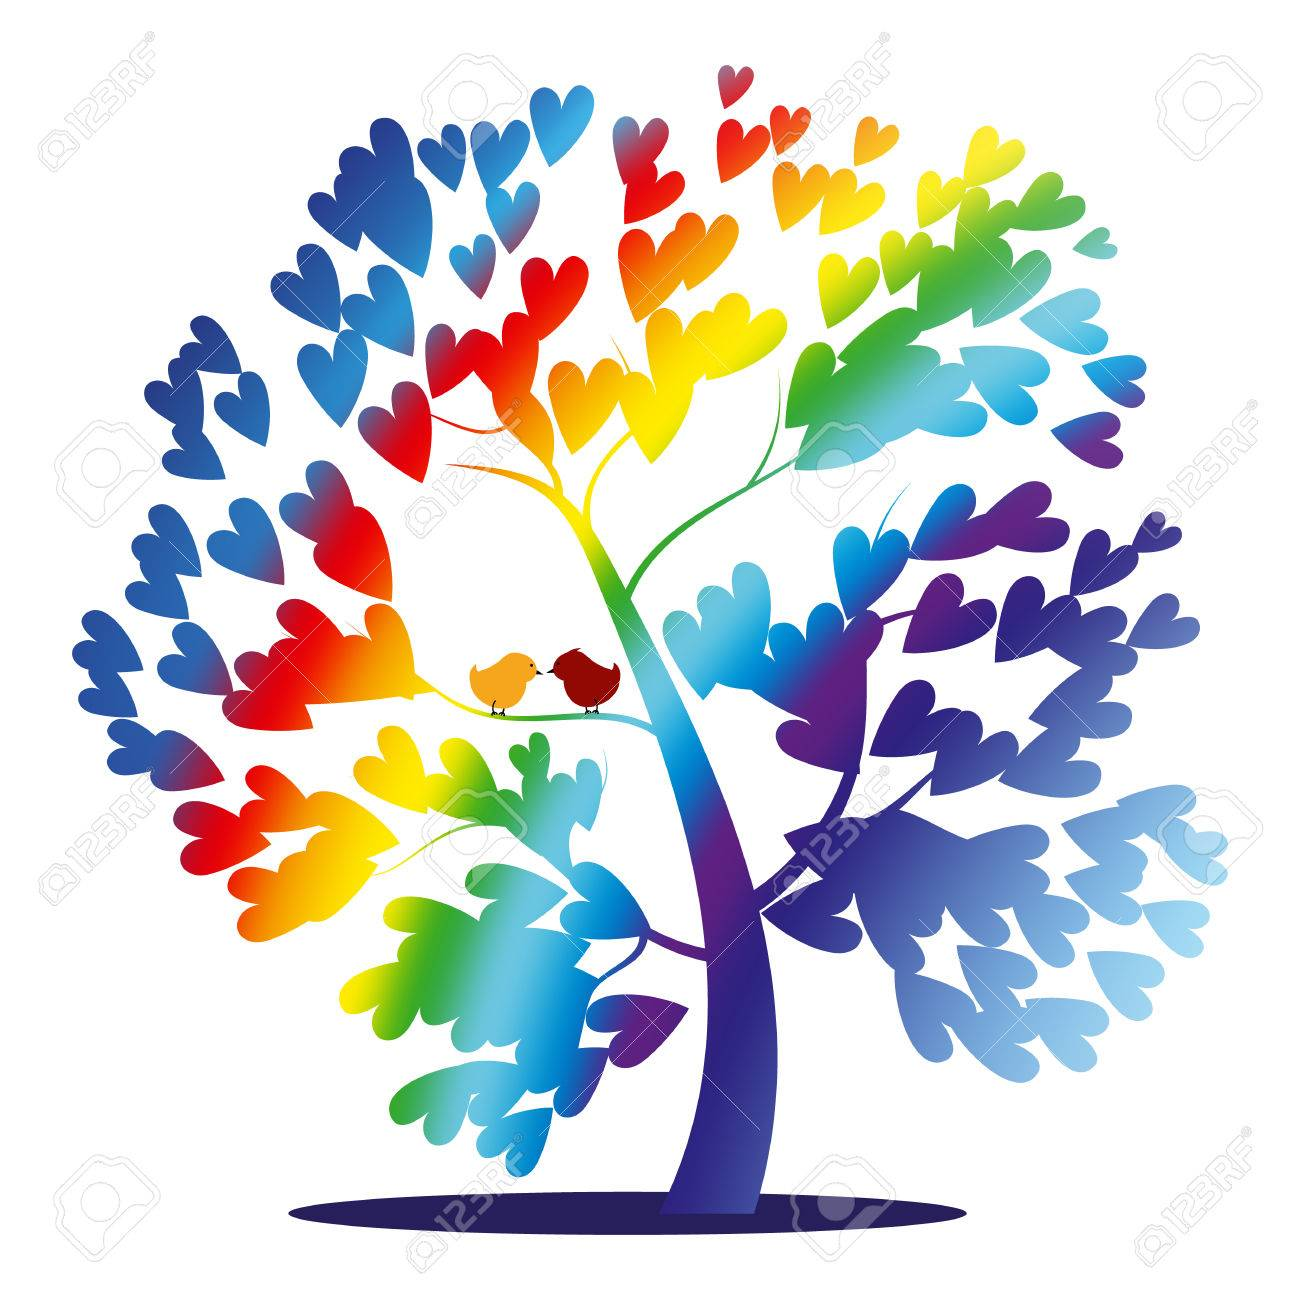 Vector rainbow tree with birds and heart shaped leaves - 33833760